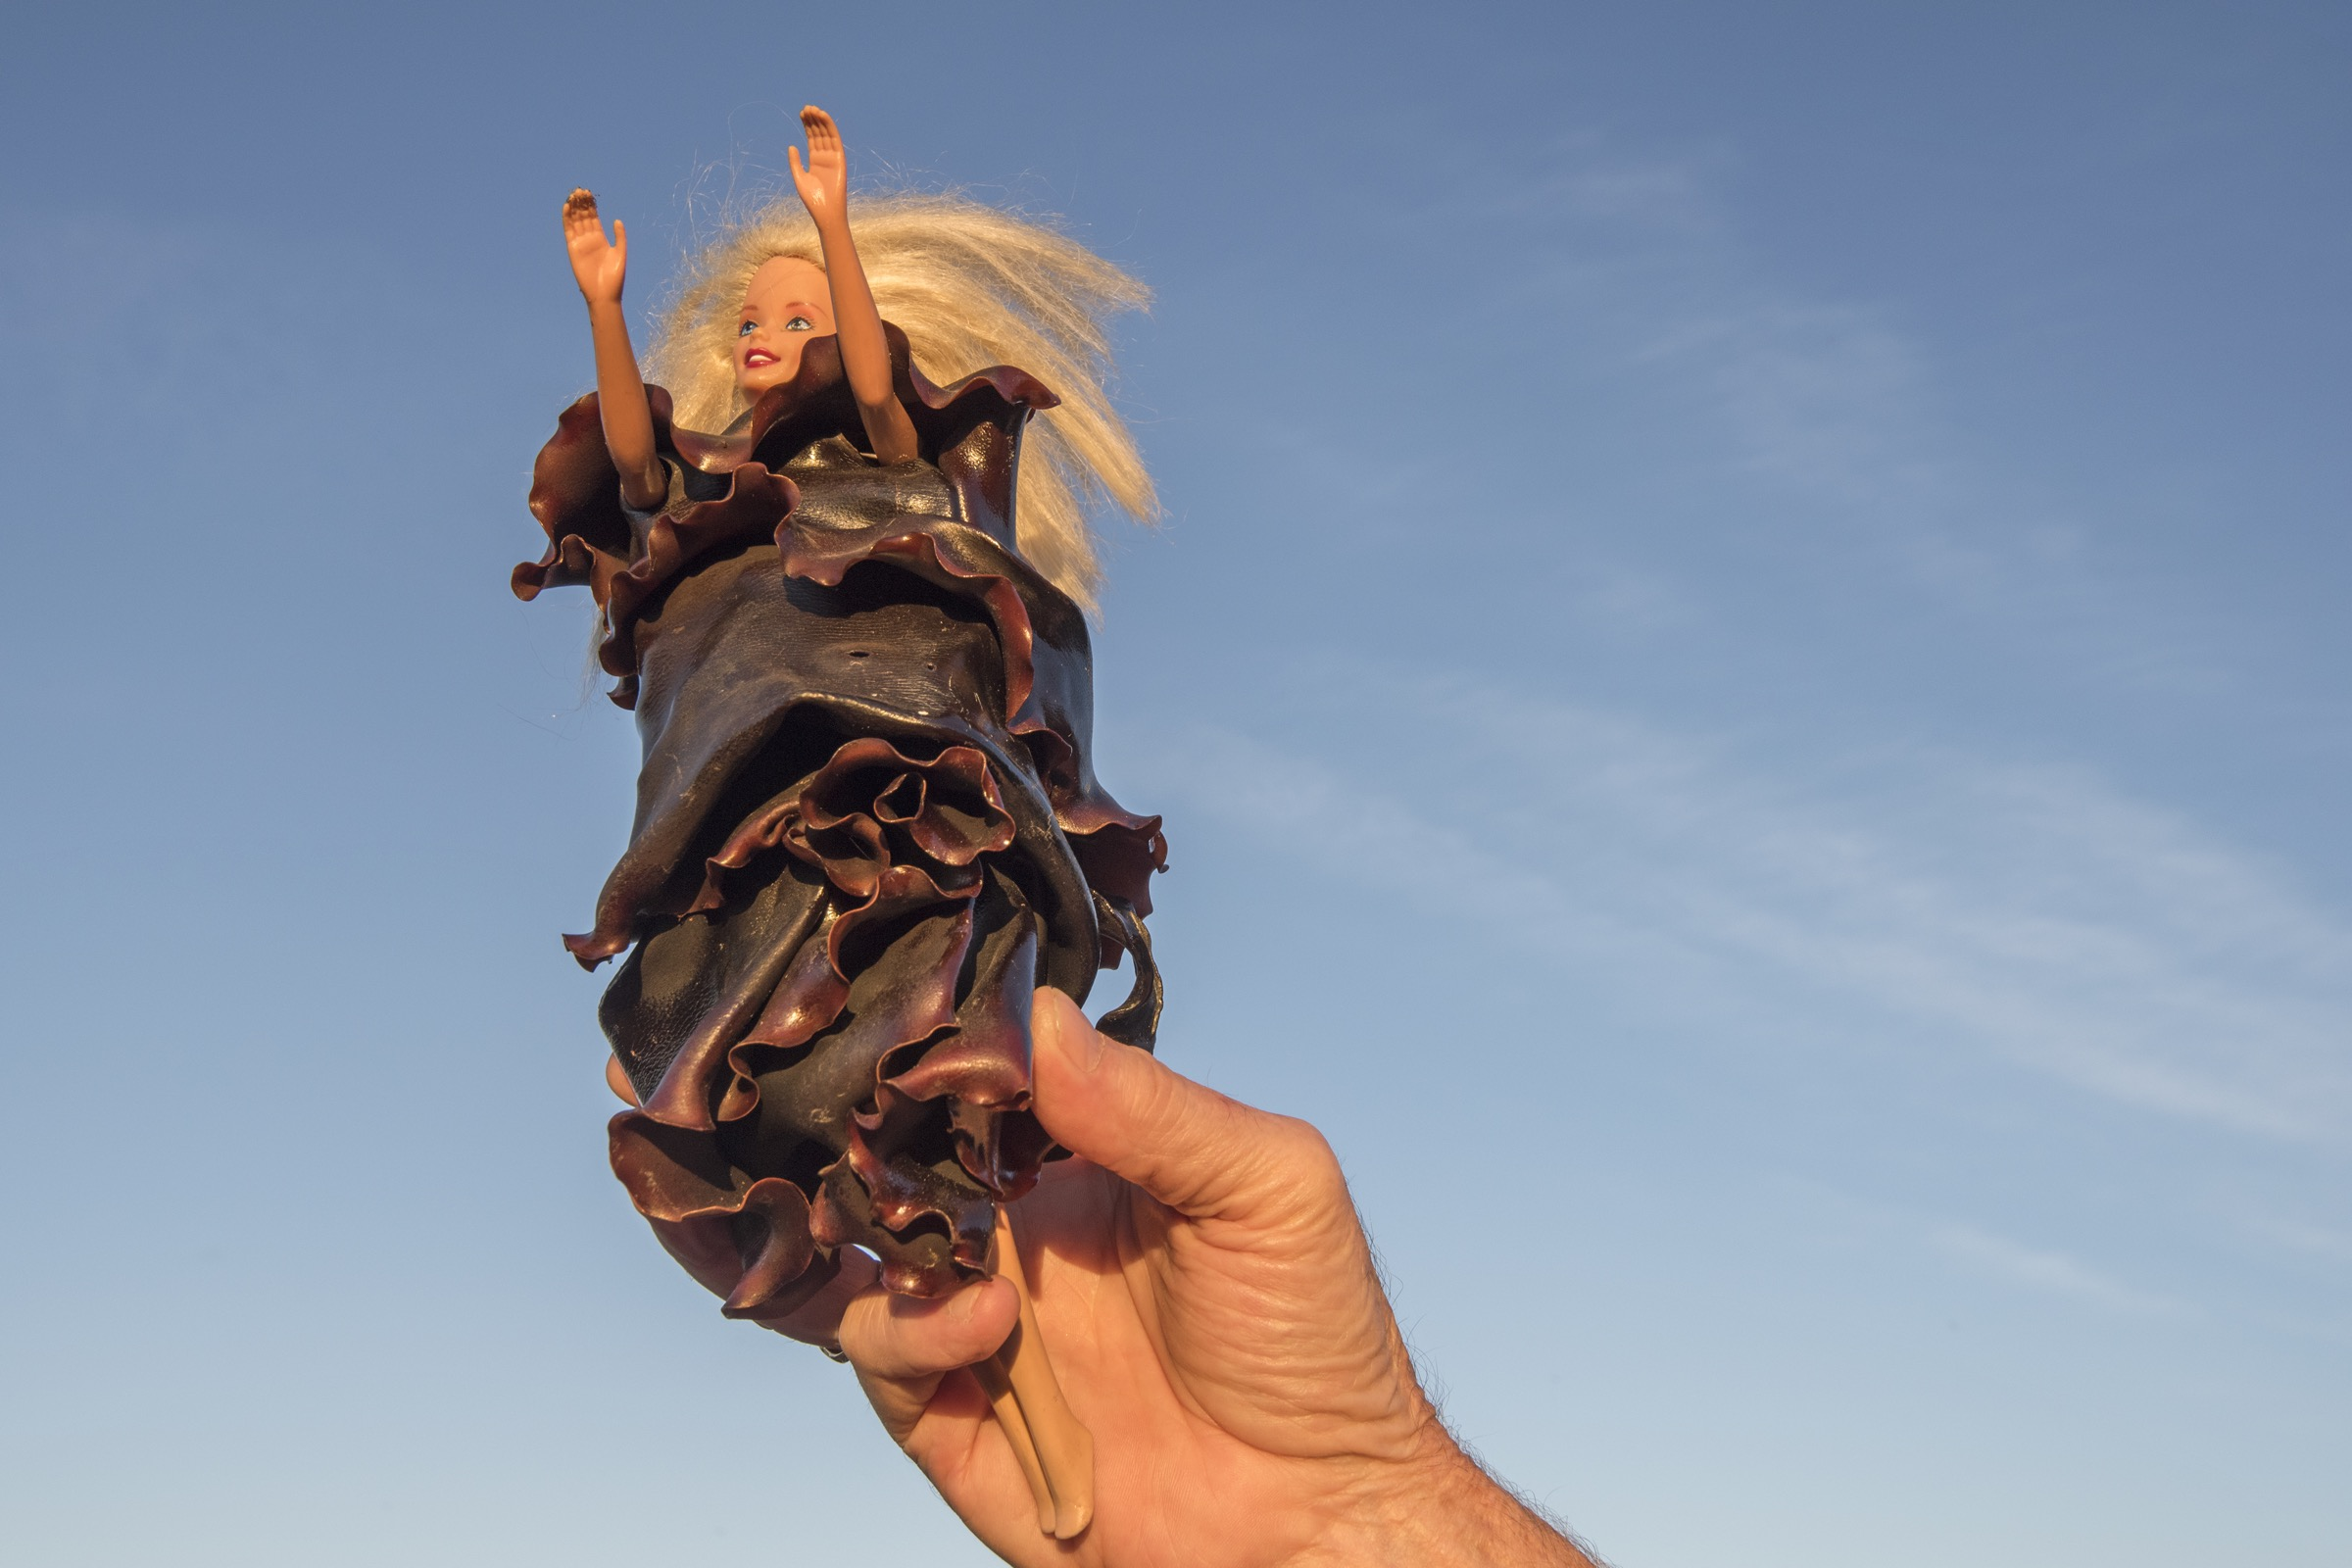 King Island resident artist Caroline Kininmonth creates art made from bull kelp, including designer dresses for Barbie dolls.